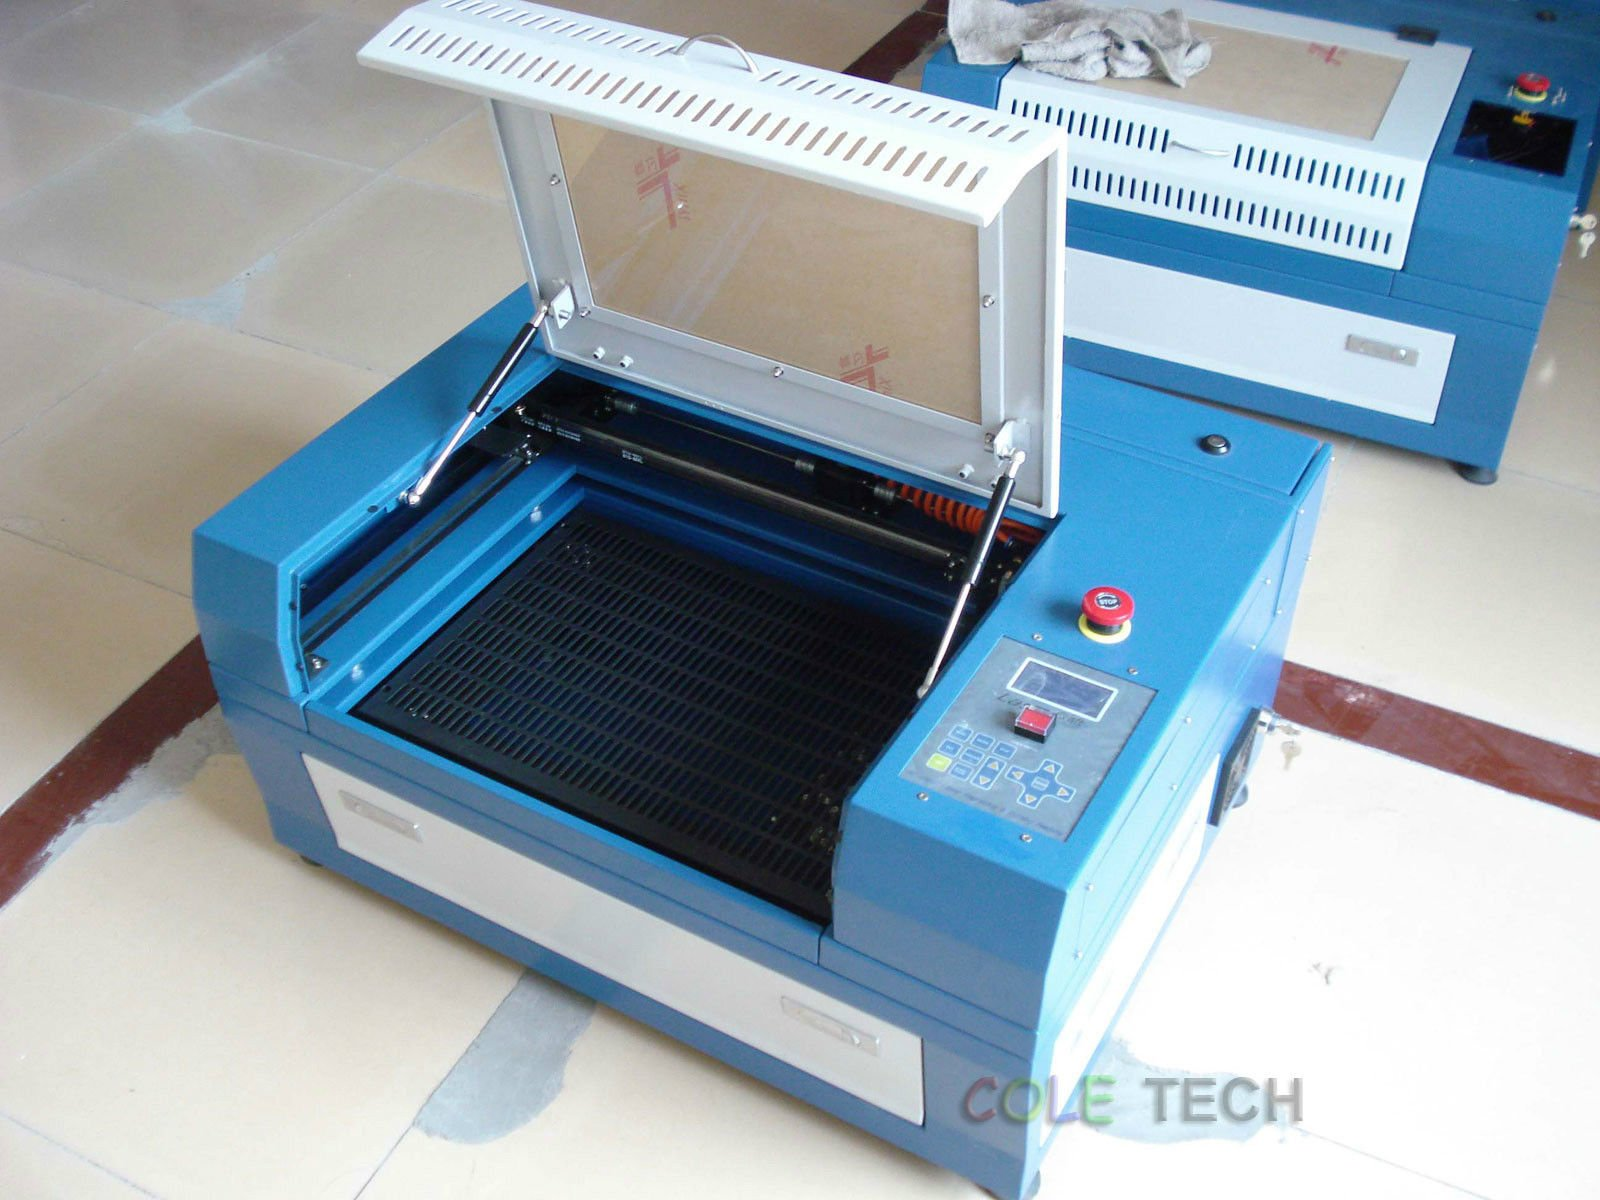 50w CO2 Laser Engraver+Rotary+Honeycomb table by air express 5-7days delivery by Cole